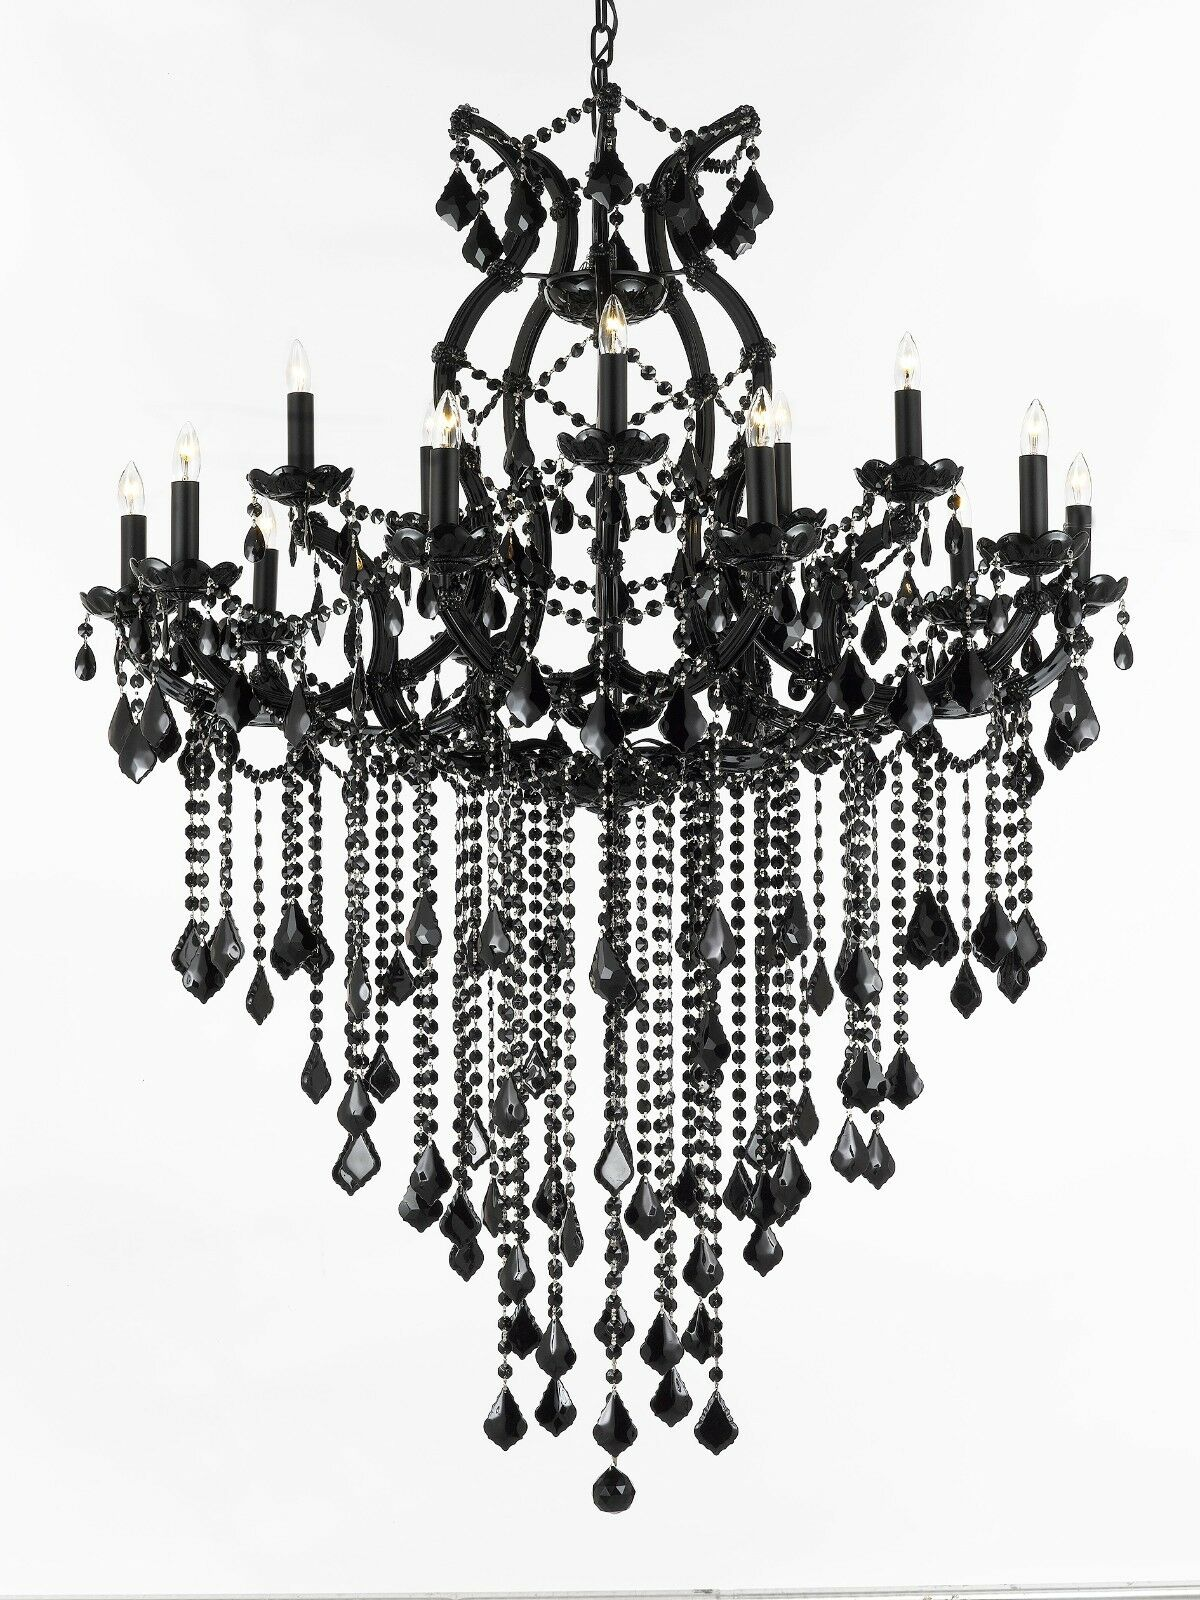 Jet black chandelier crystal lighting chandeliers 37x50 ebay picture 1 of 1 mozeypictures Image collections